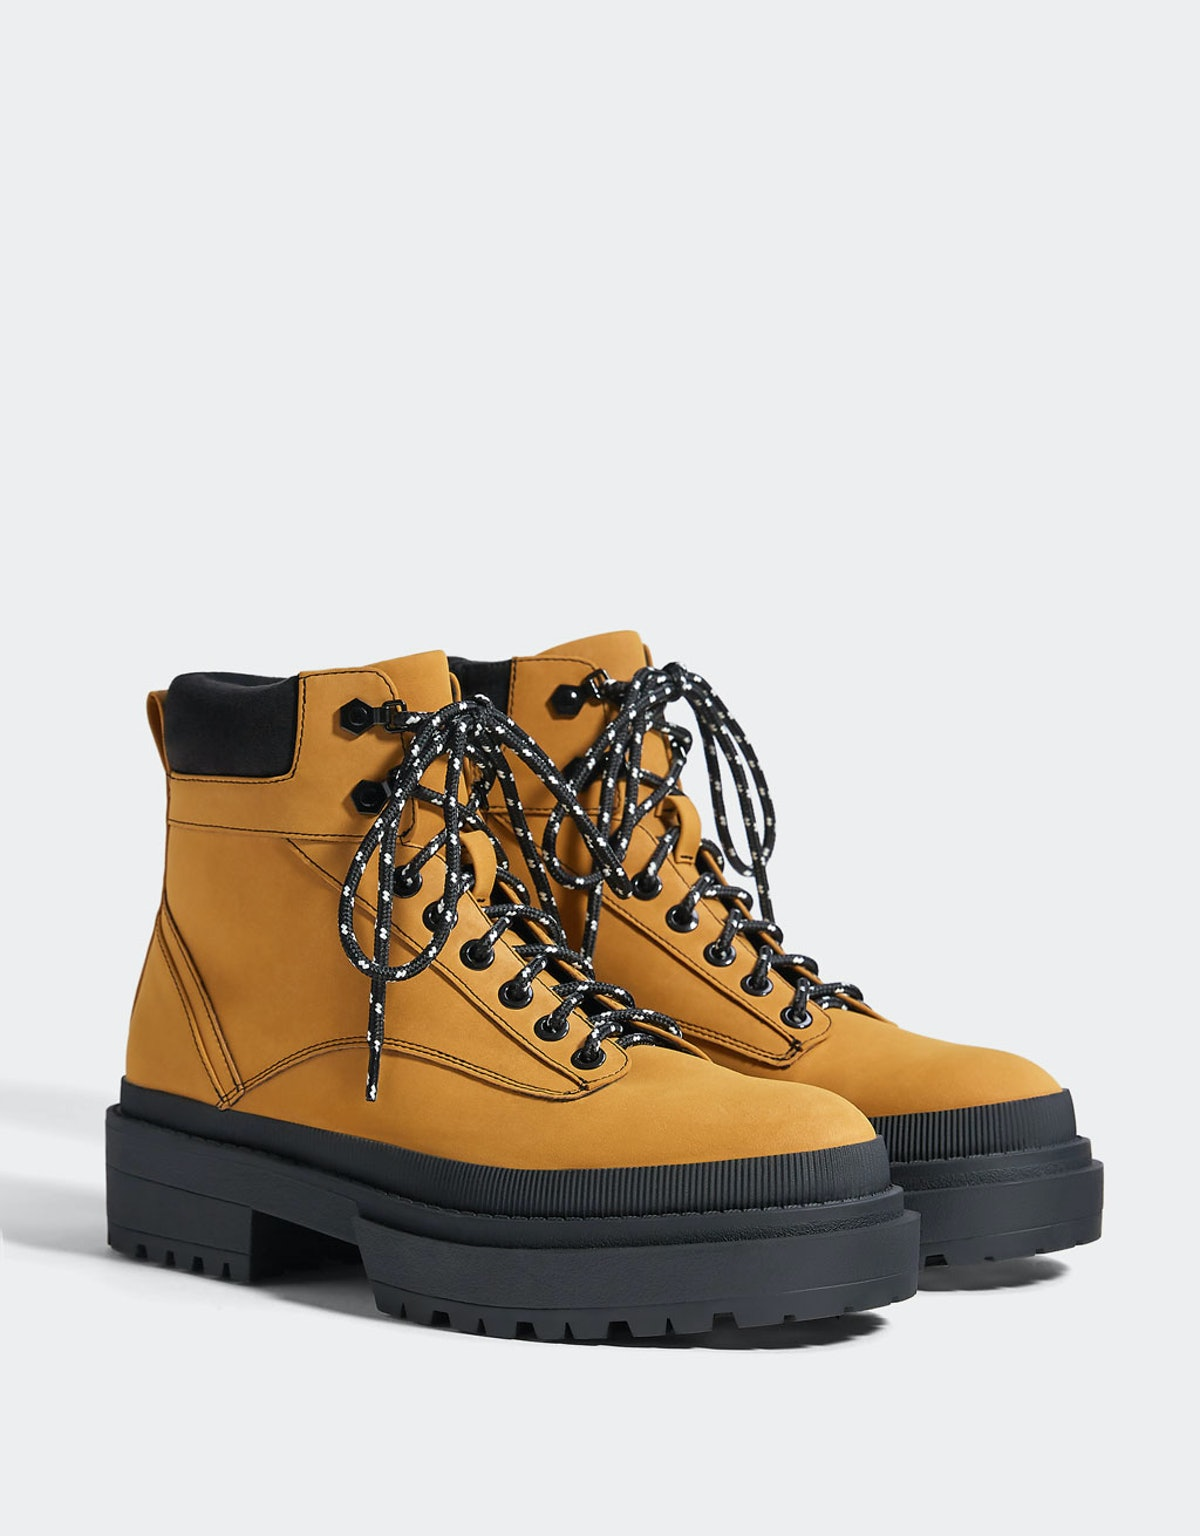 Mountain platform ankle boots